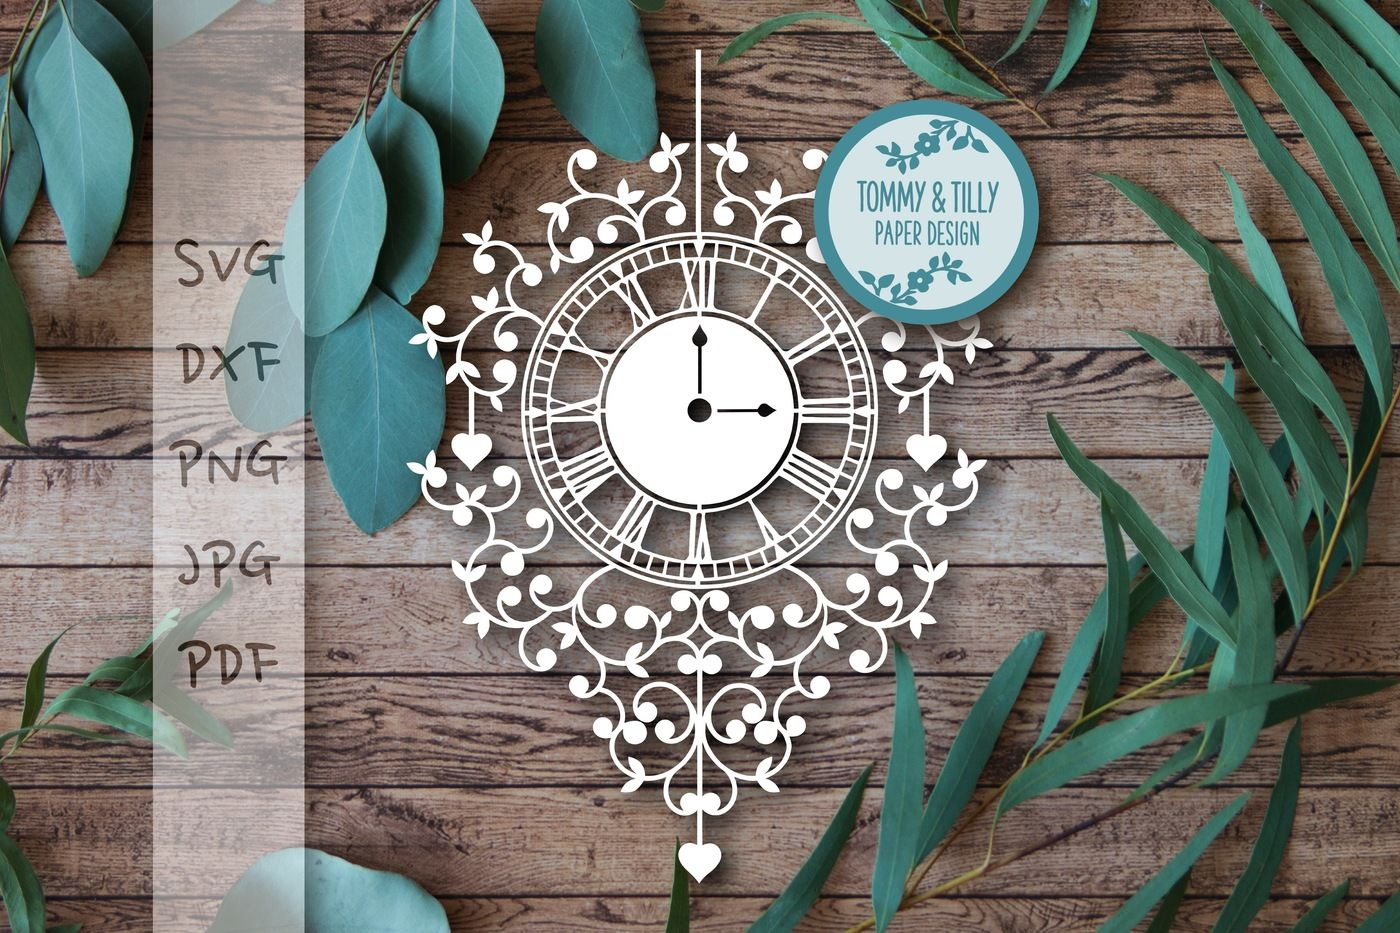 Clock SVG DXF PNG PDF JPG By Tommy and Tilly Design